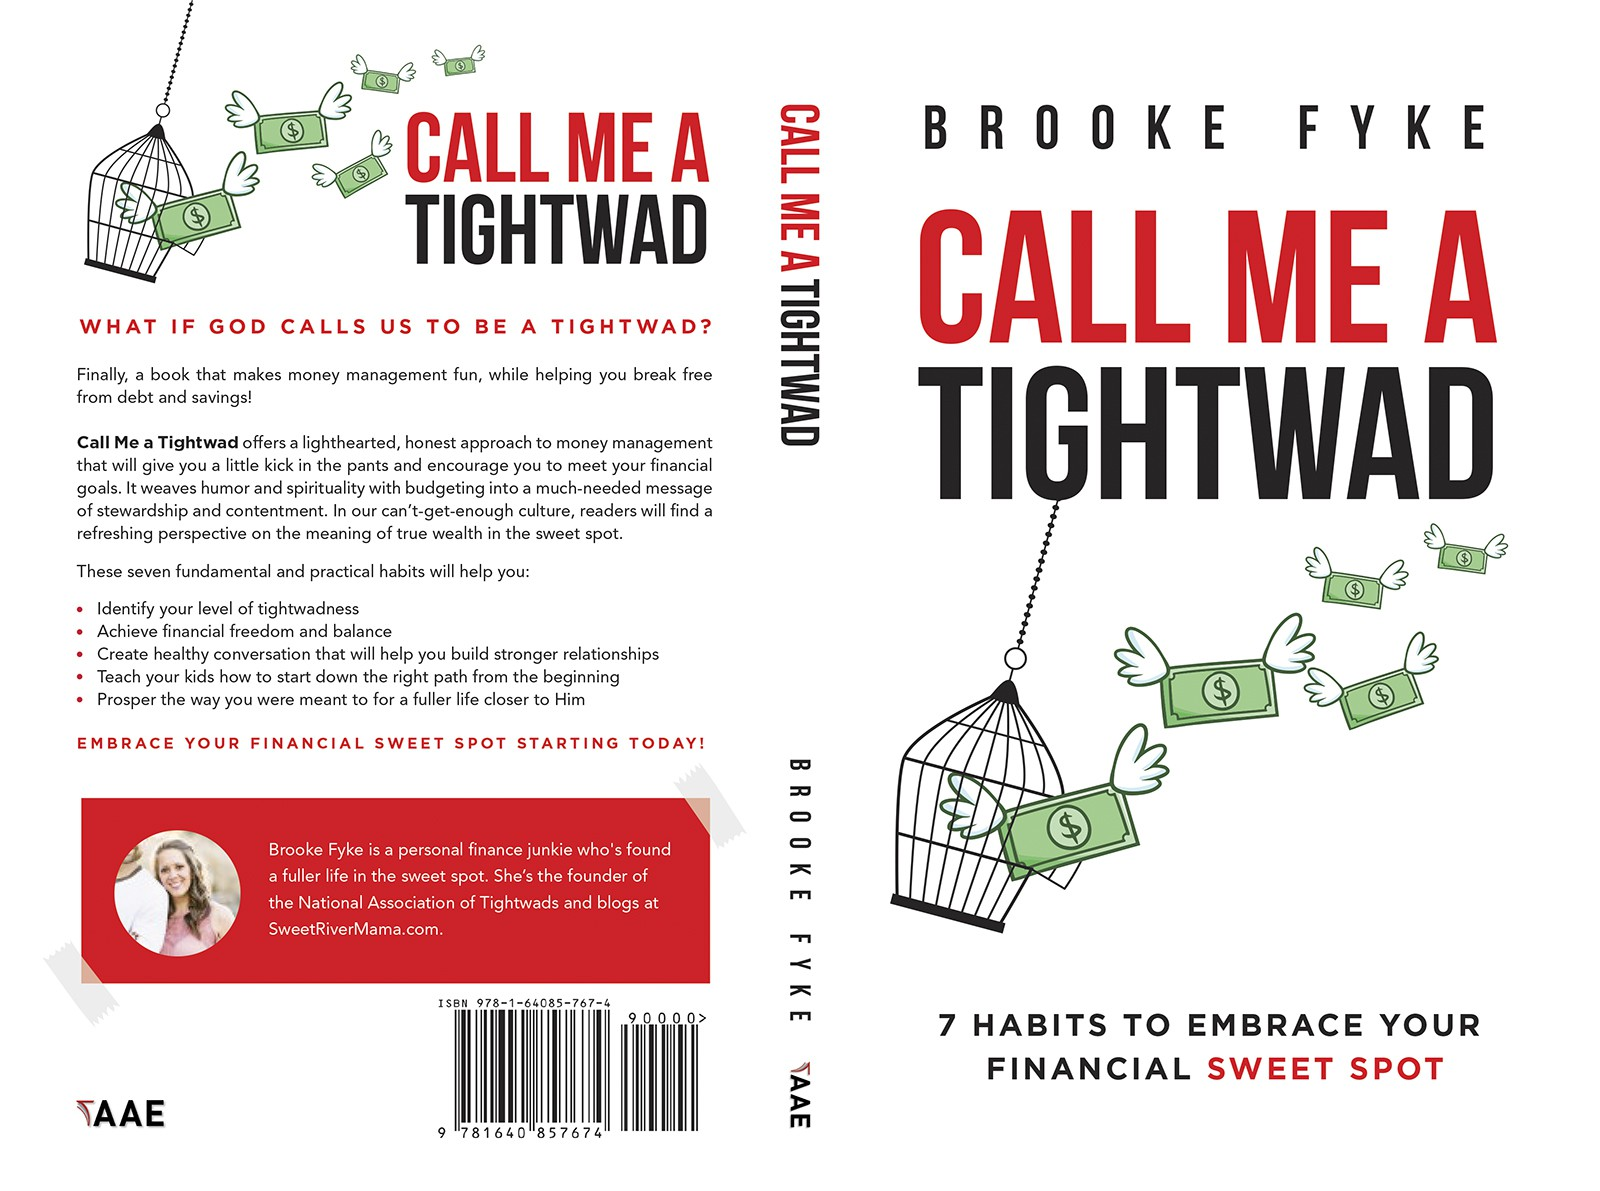 'Call Me a Tightwad' book needs a cover!